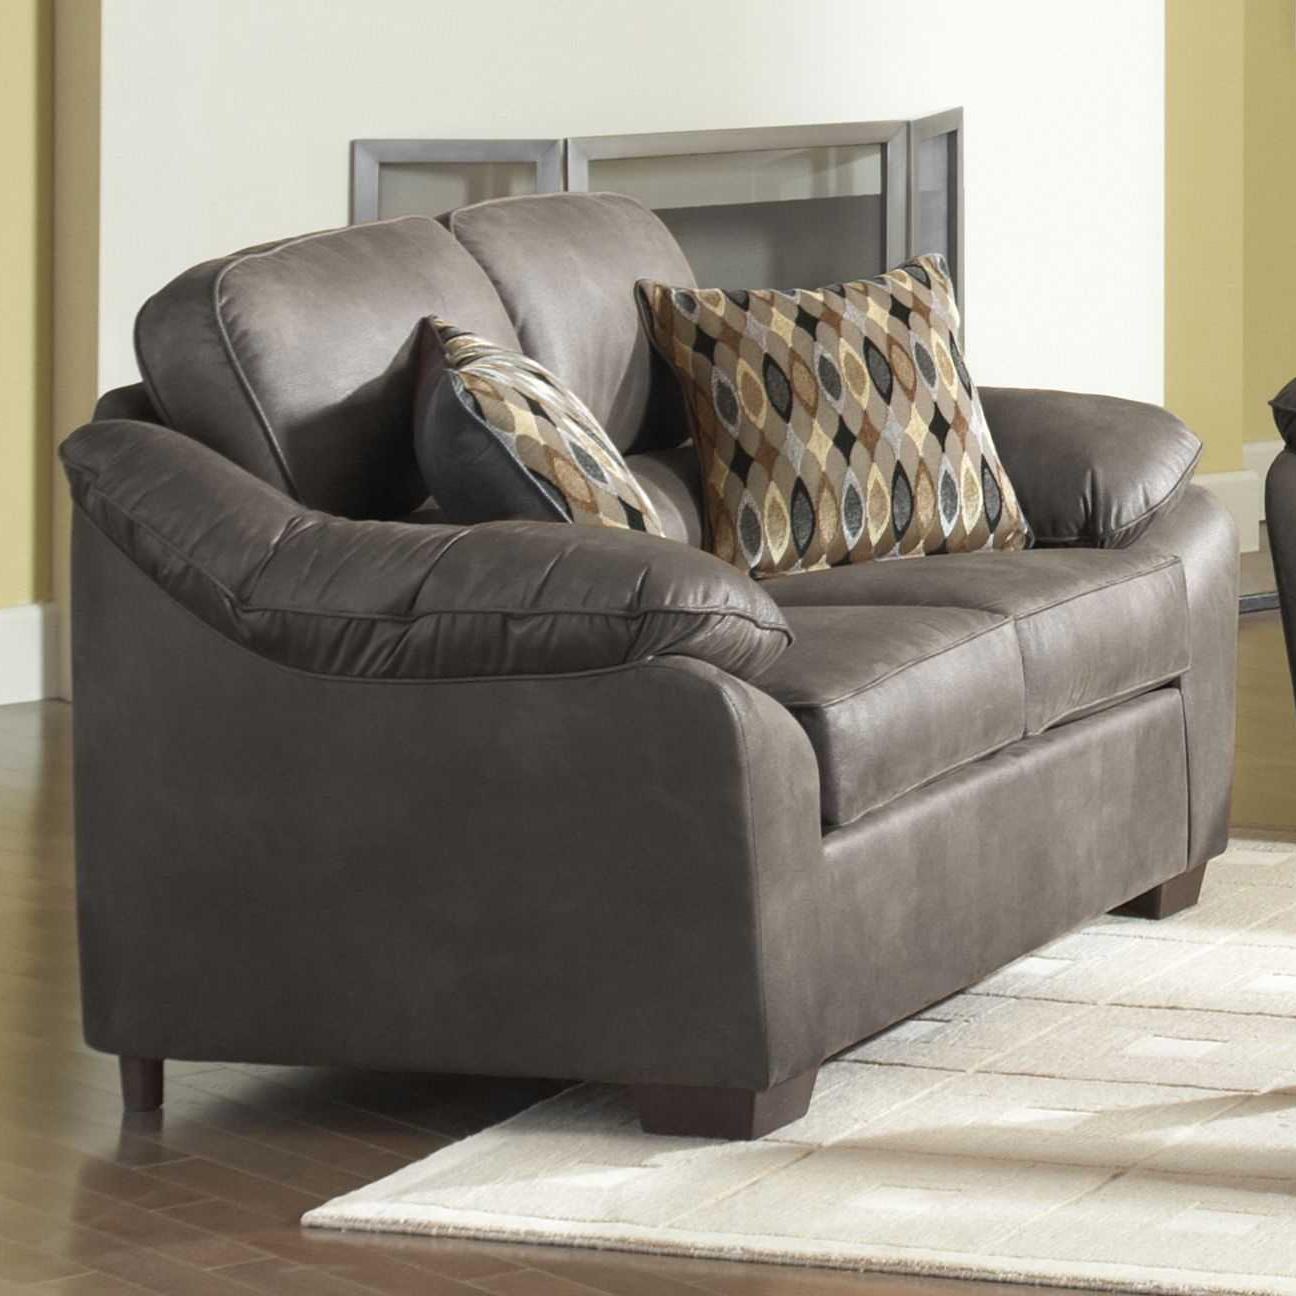 Serta Upholstery 3800 Pillowed Love Seat - Item Number: 3800 LS